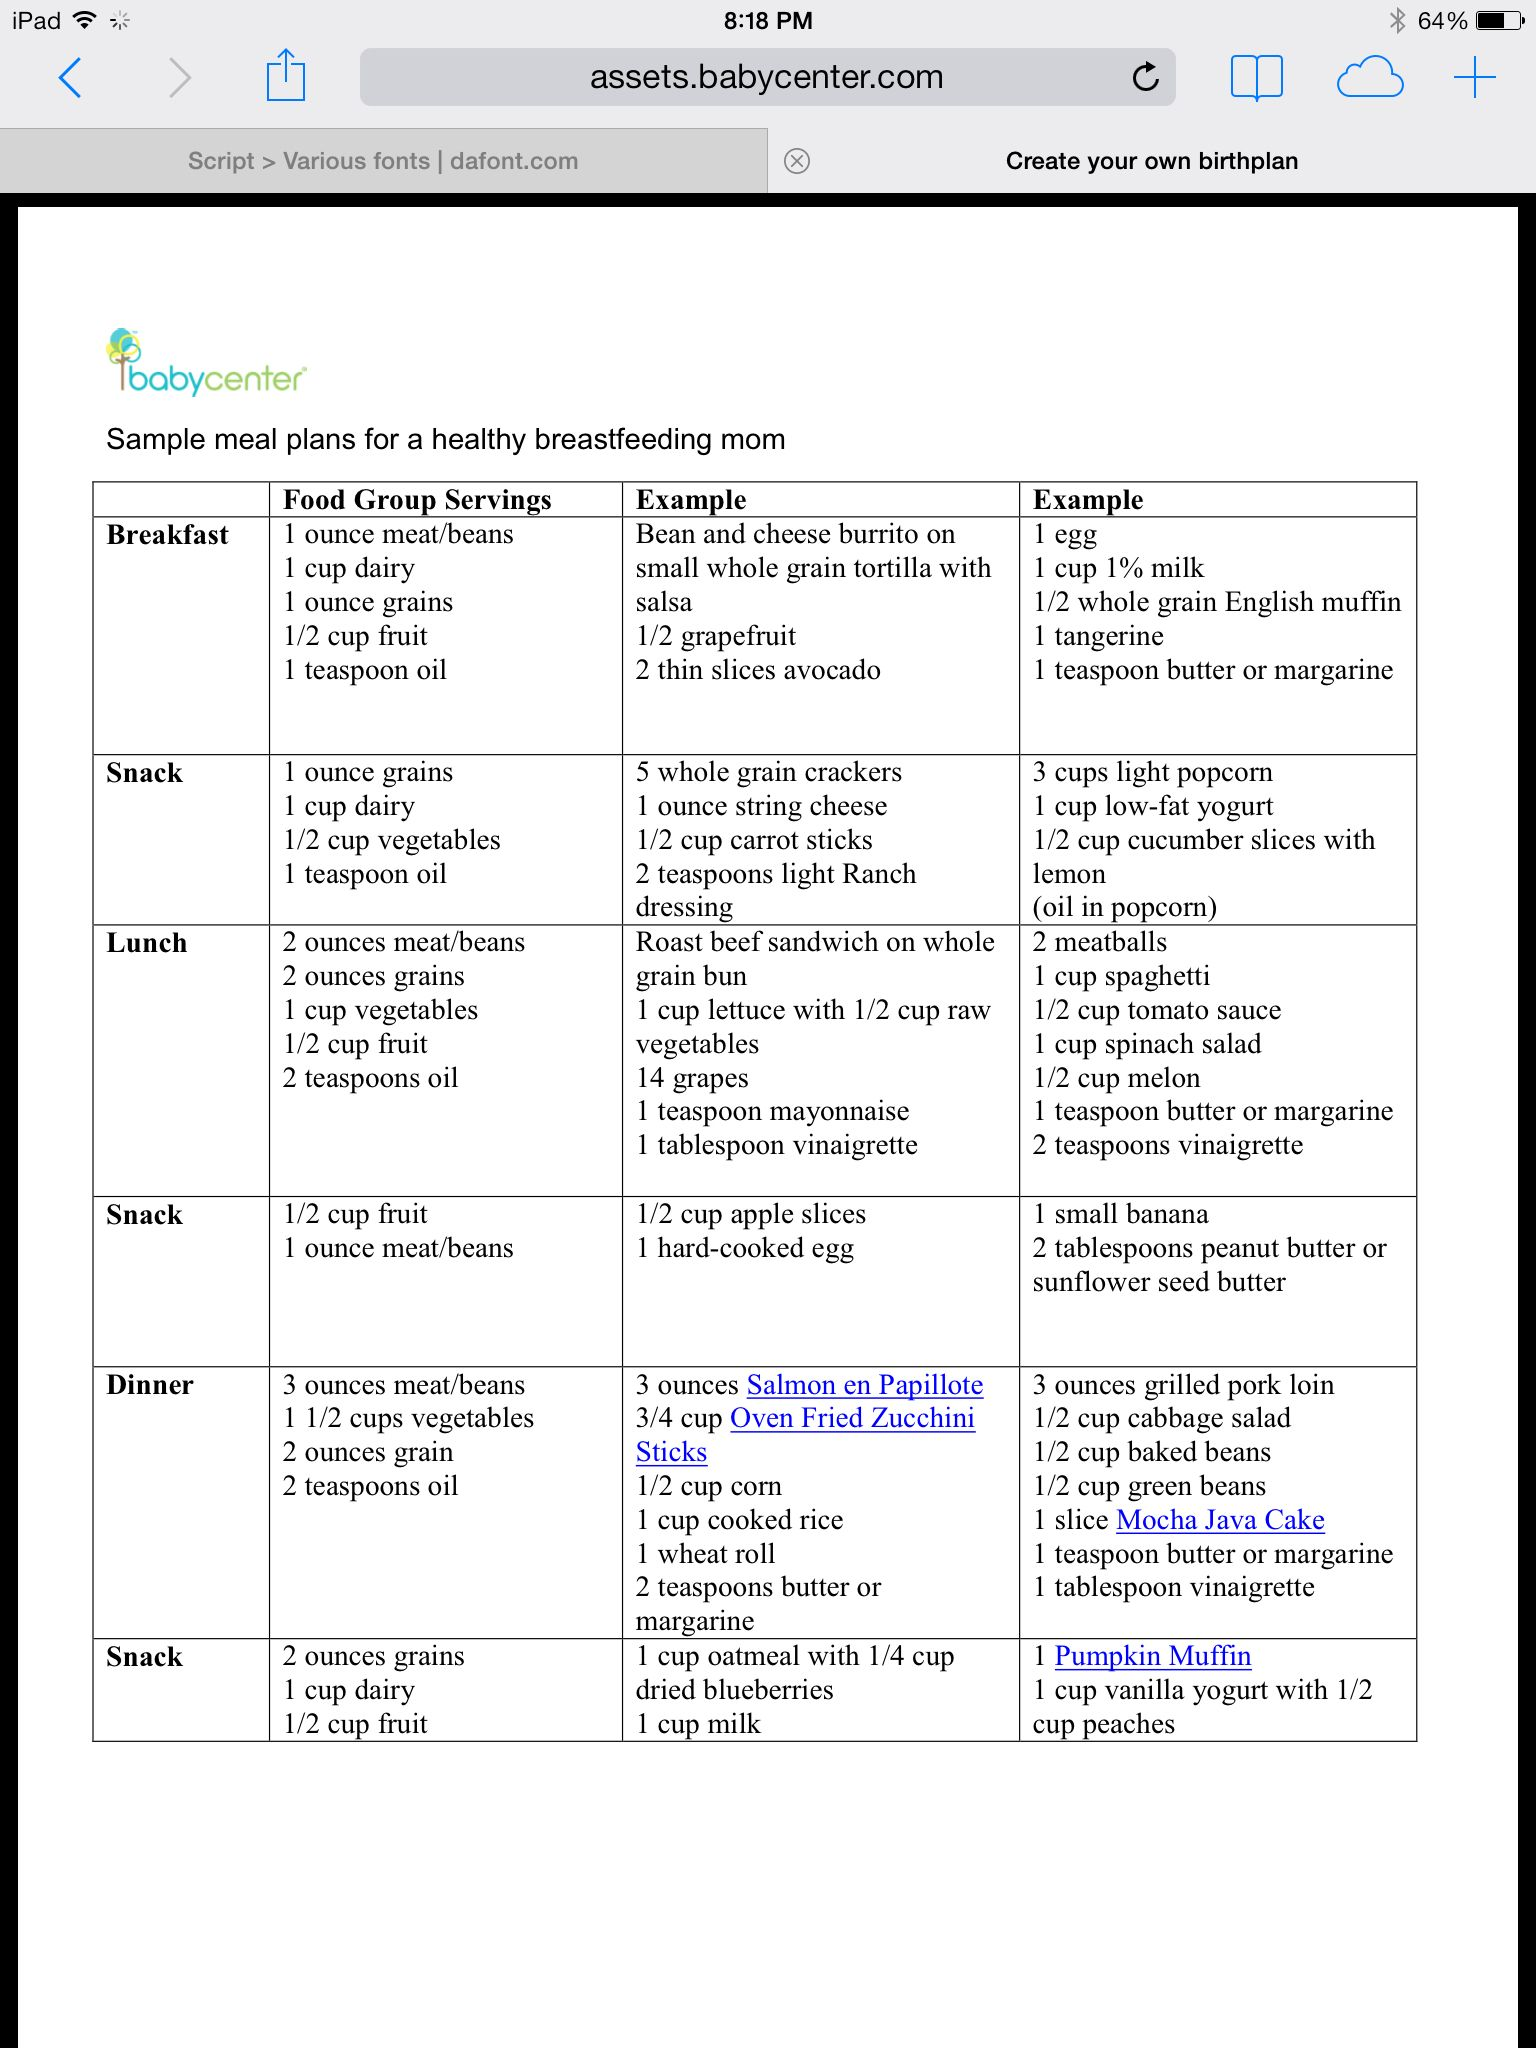 Sample Meal Plan For Breastfeeding Moms